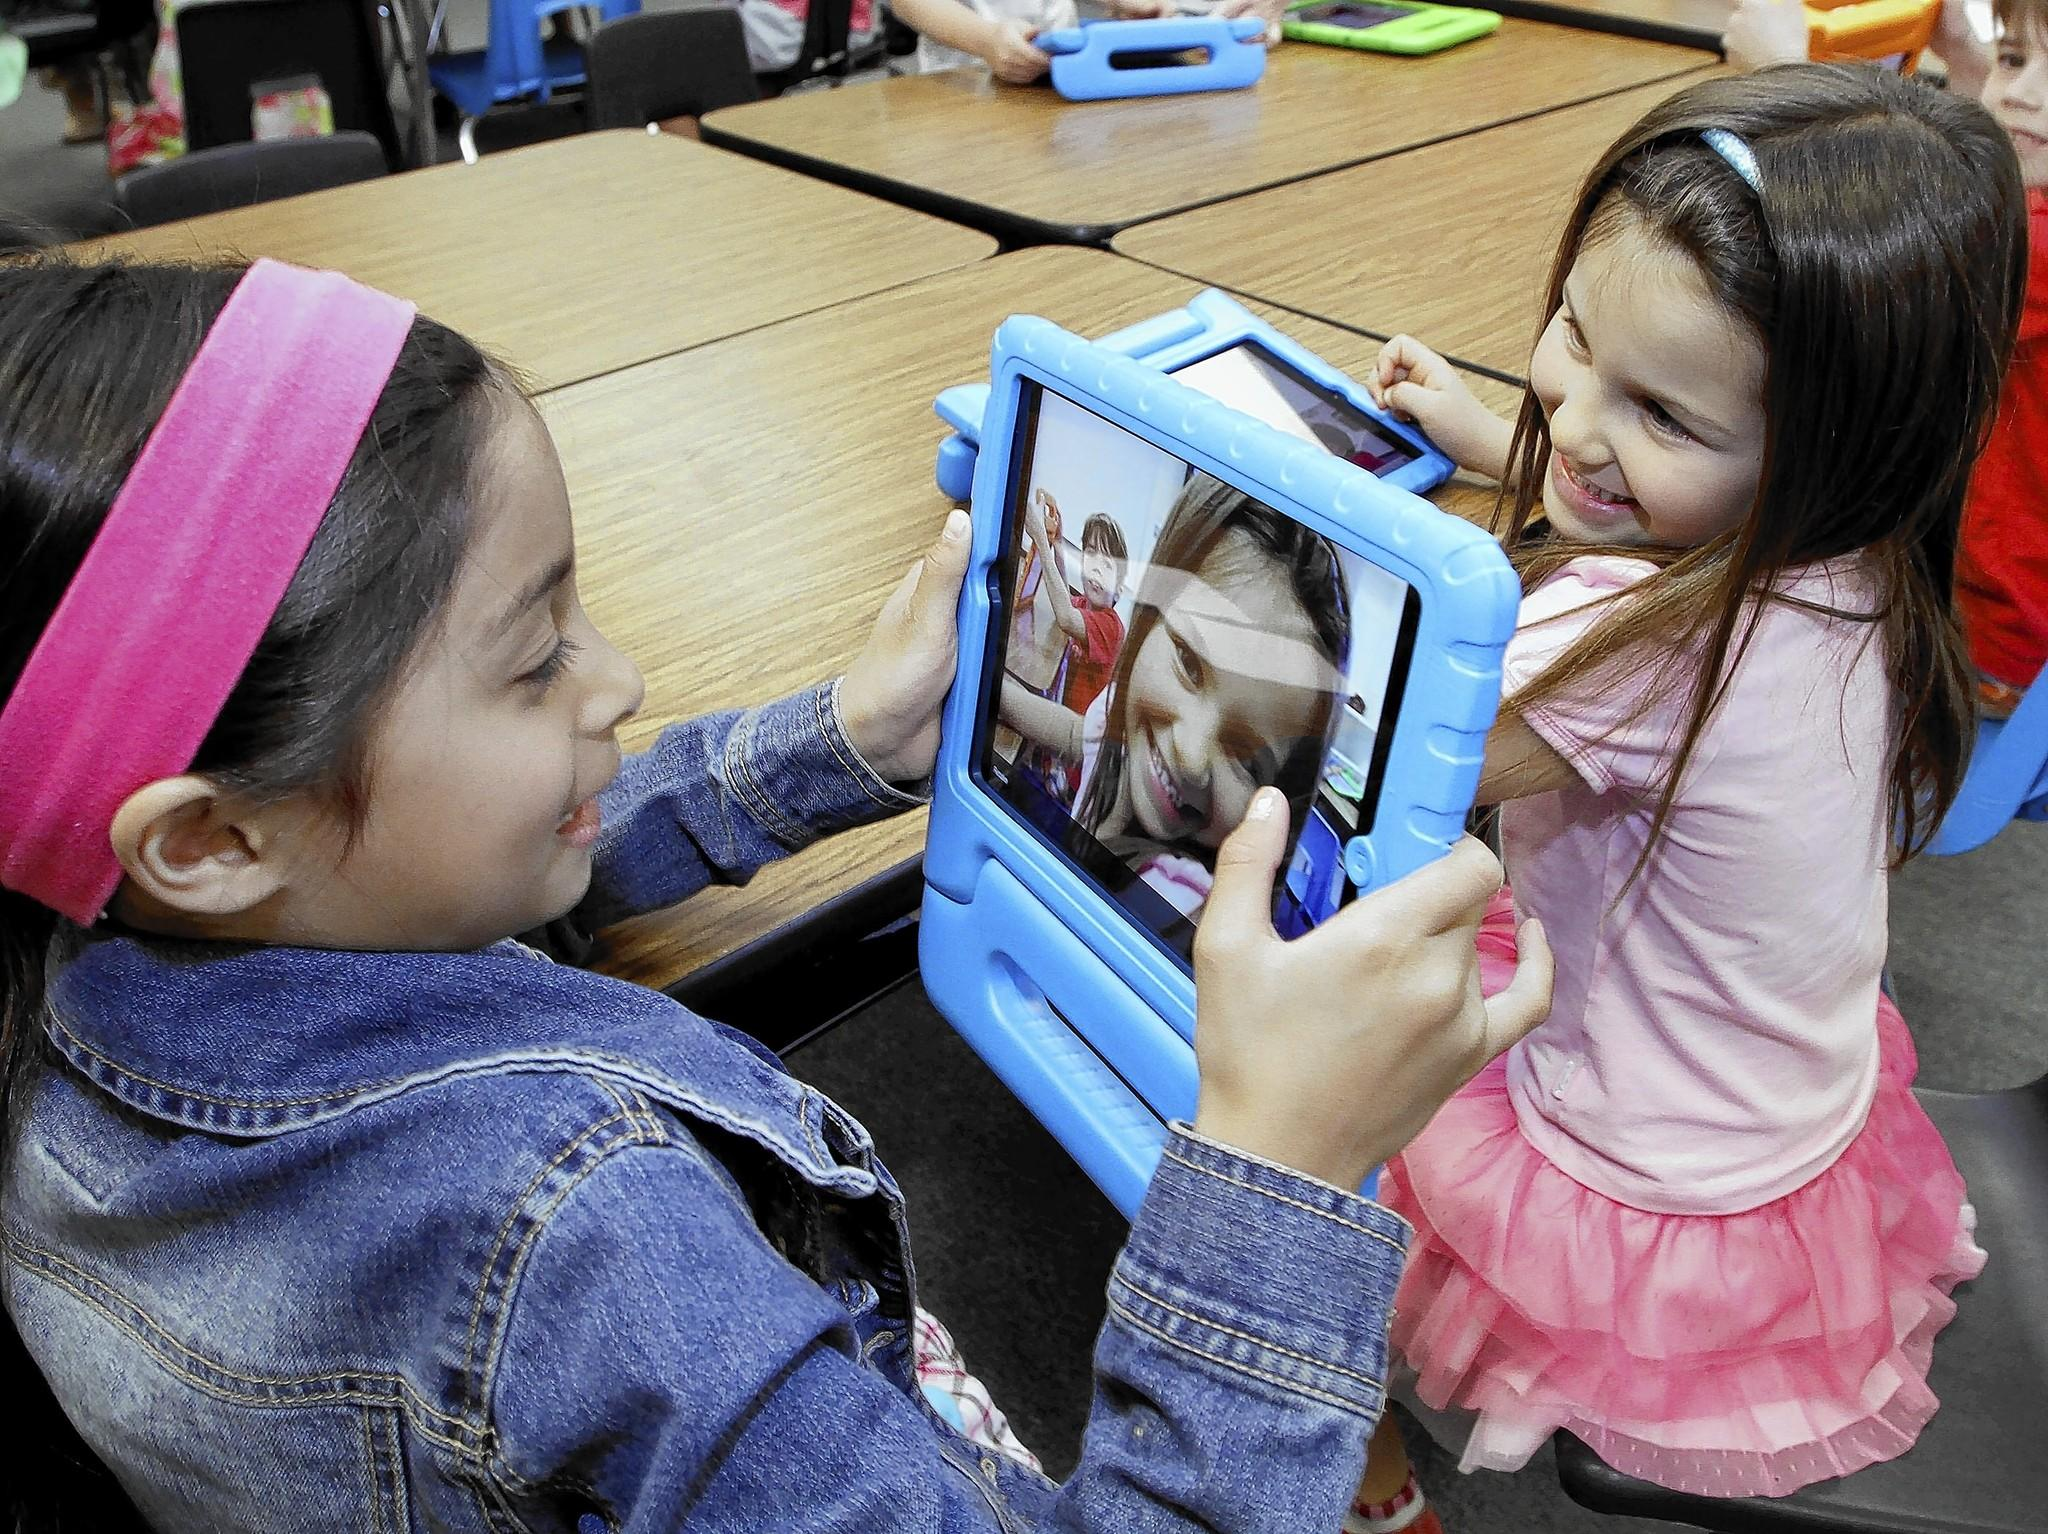 First grader Lexi Frost, left, takes a photo of her friend Kate Cooper, right, during class at Palm Crest Elementary School's iPad Learning Lab in La Cañada Flintridge on Tuesday, April 8, 2014. The school district recently opened three elementary school iPad Learning Labs with donations from the Educational Foundation.